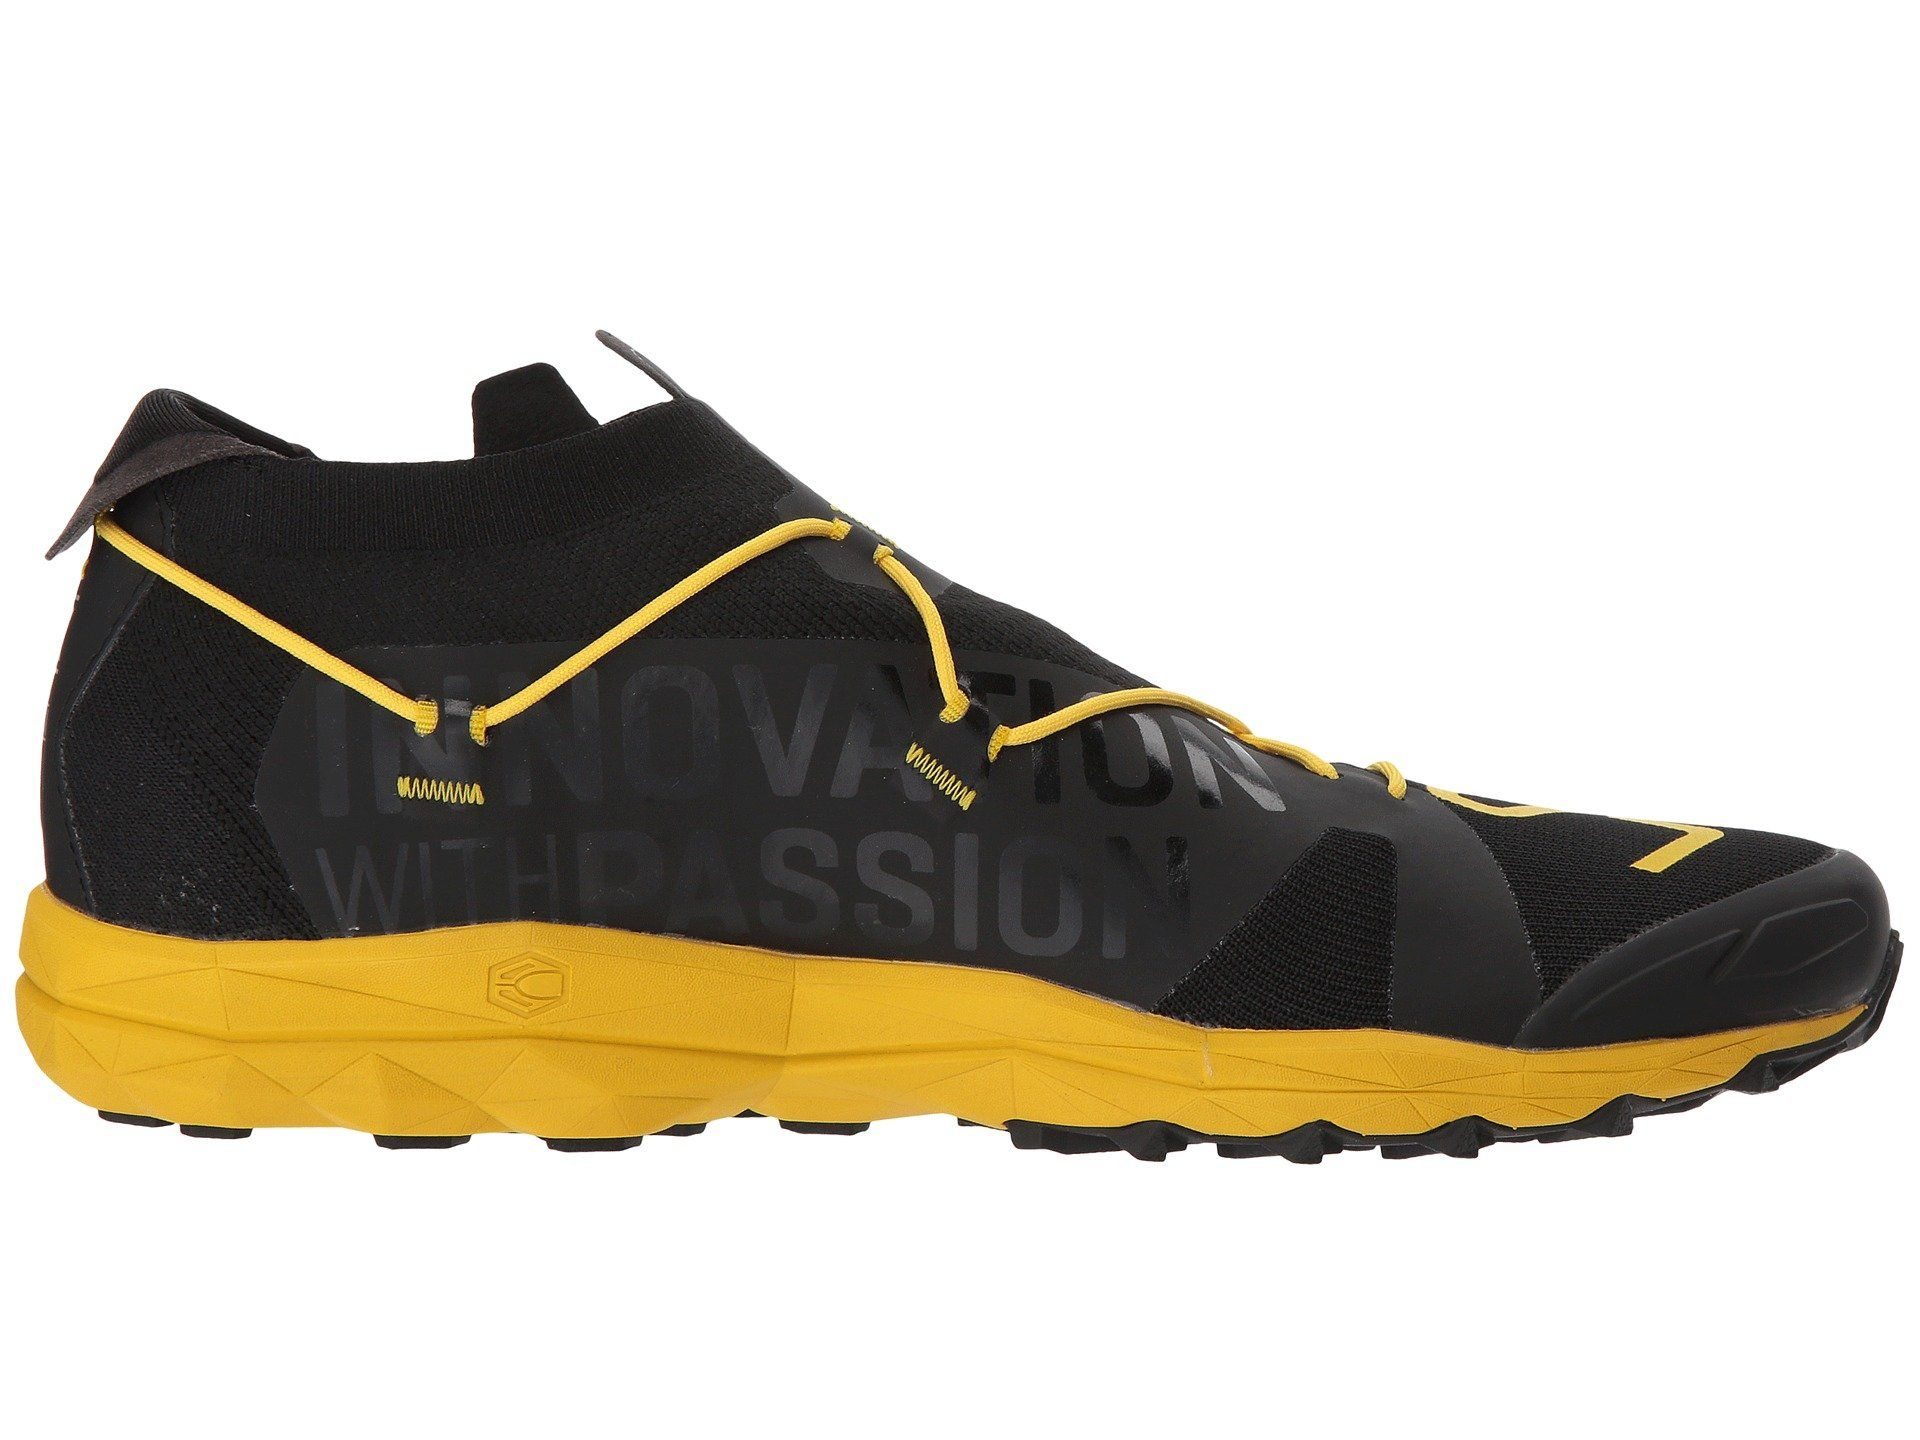 9ddb5e41560 Lightweight Running Shoes